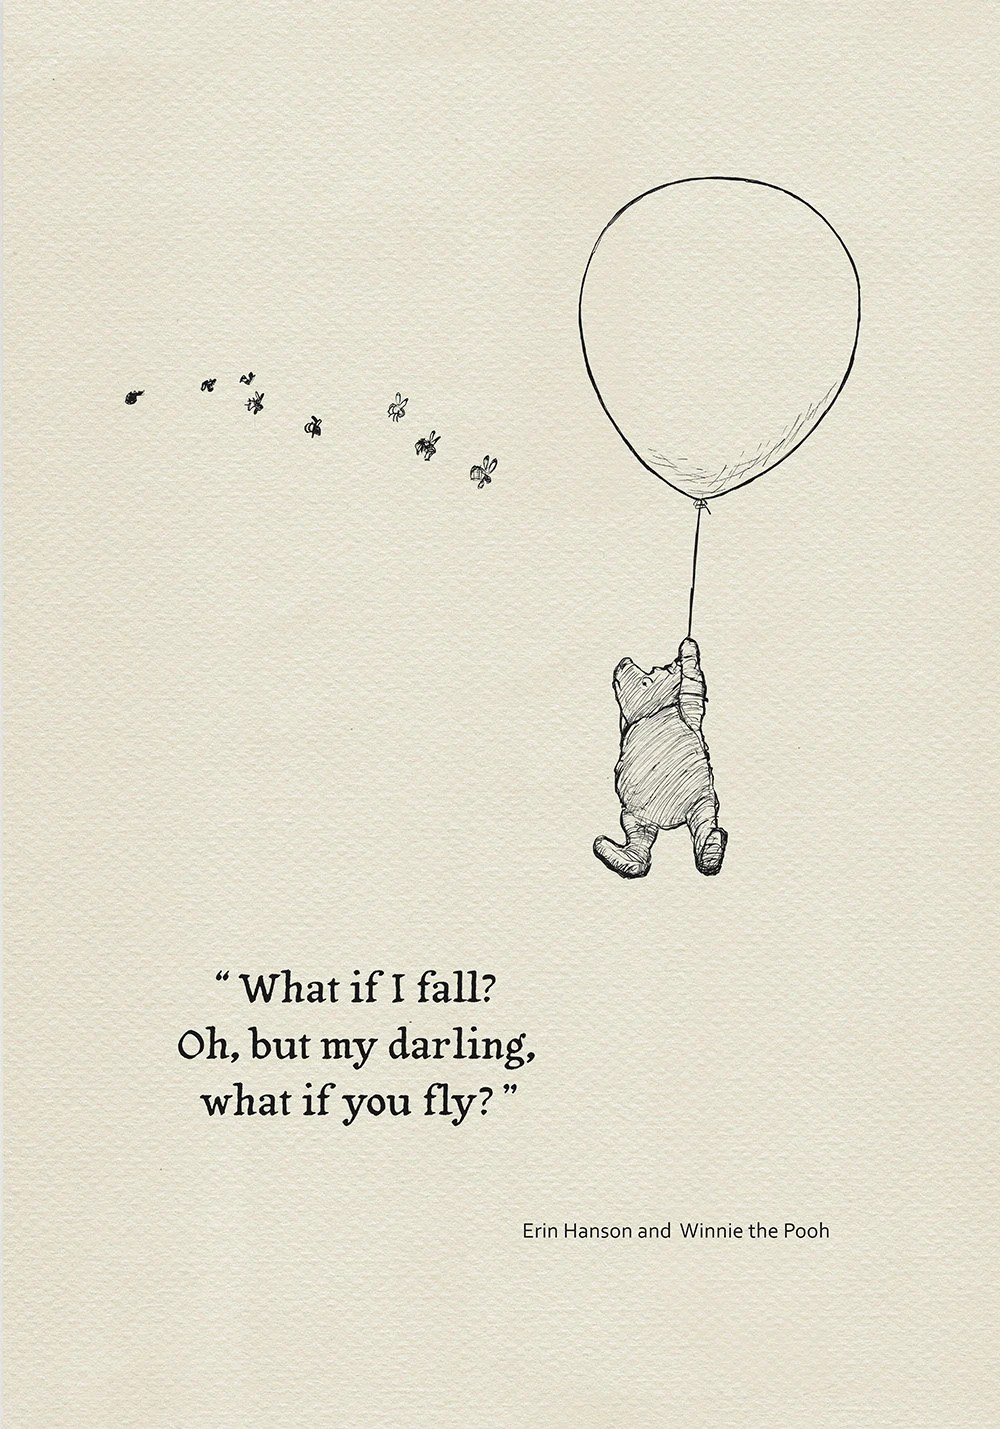 Fly Quotes : quotes, Ohbut, Darlingwhat, Quote